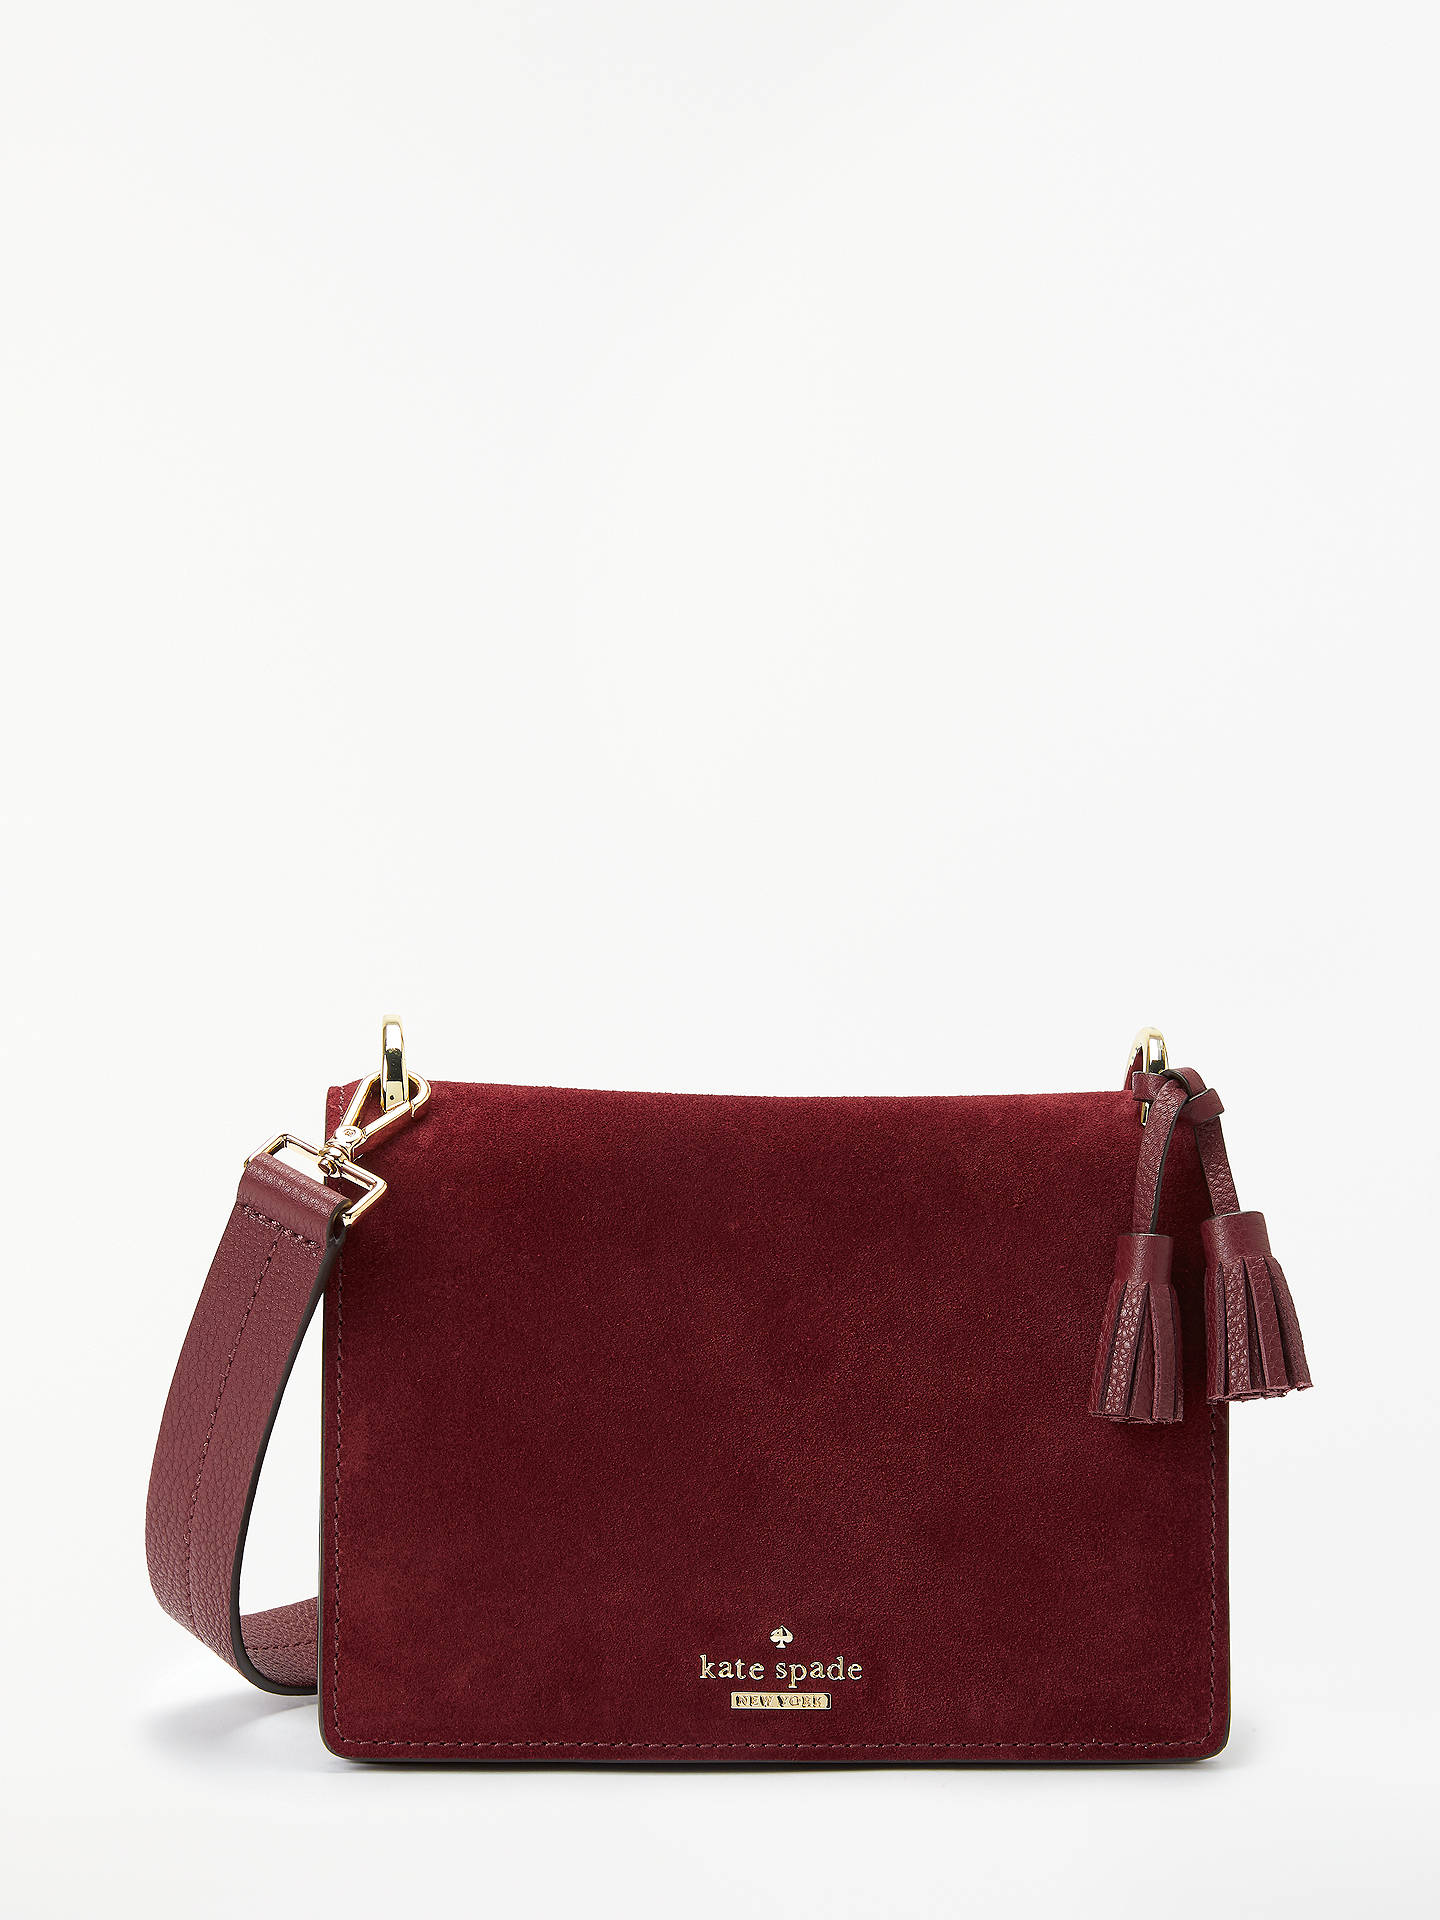 3e86273778d0 Buy kate spade new york Hayes Street Jaime Suede Cross Body Bag, Sienna  Online at ...